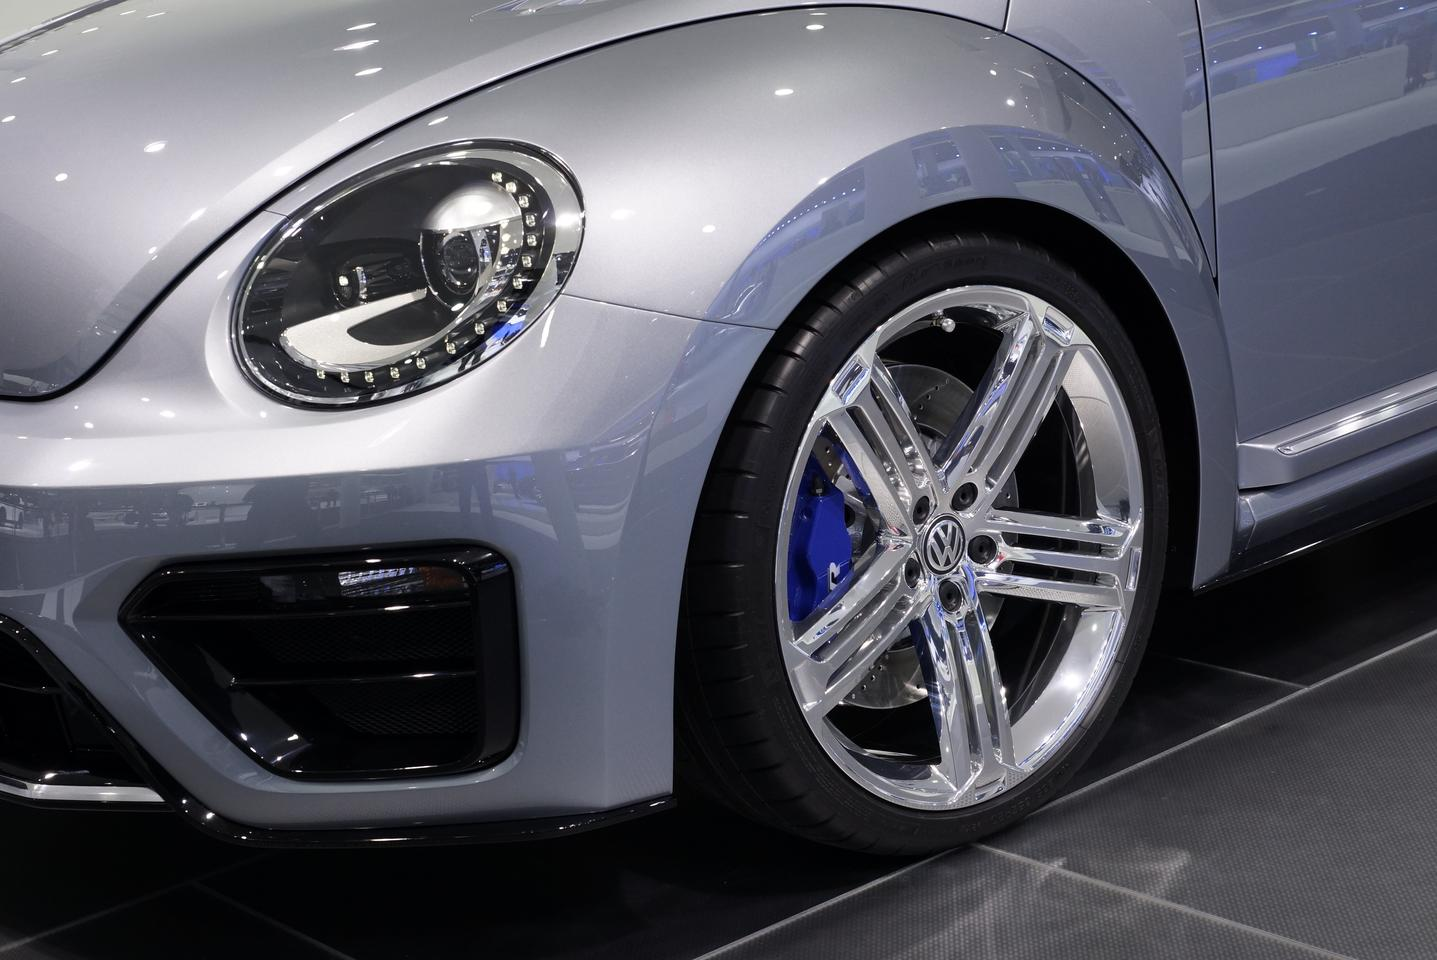 The Beetle R features 20-inch alloy wheels, with blue R-design brake calipers